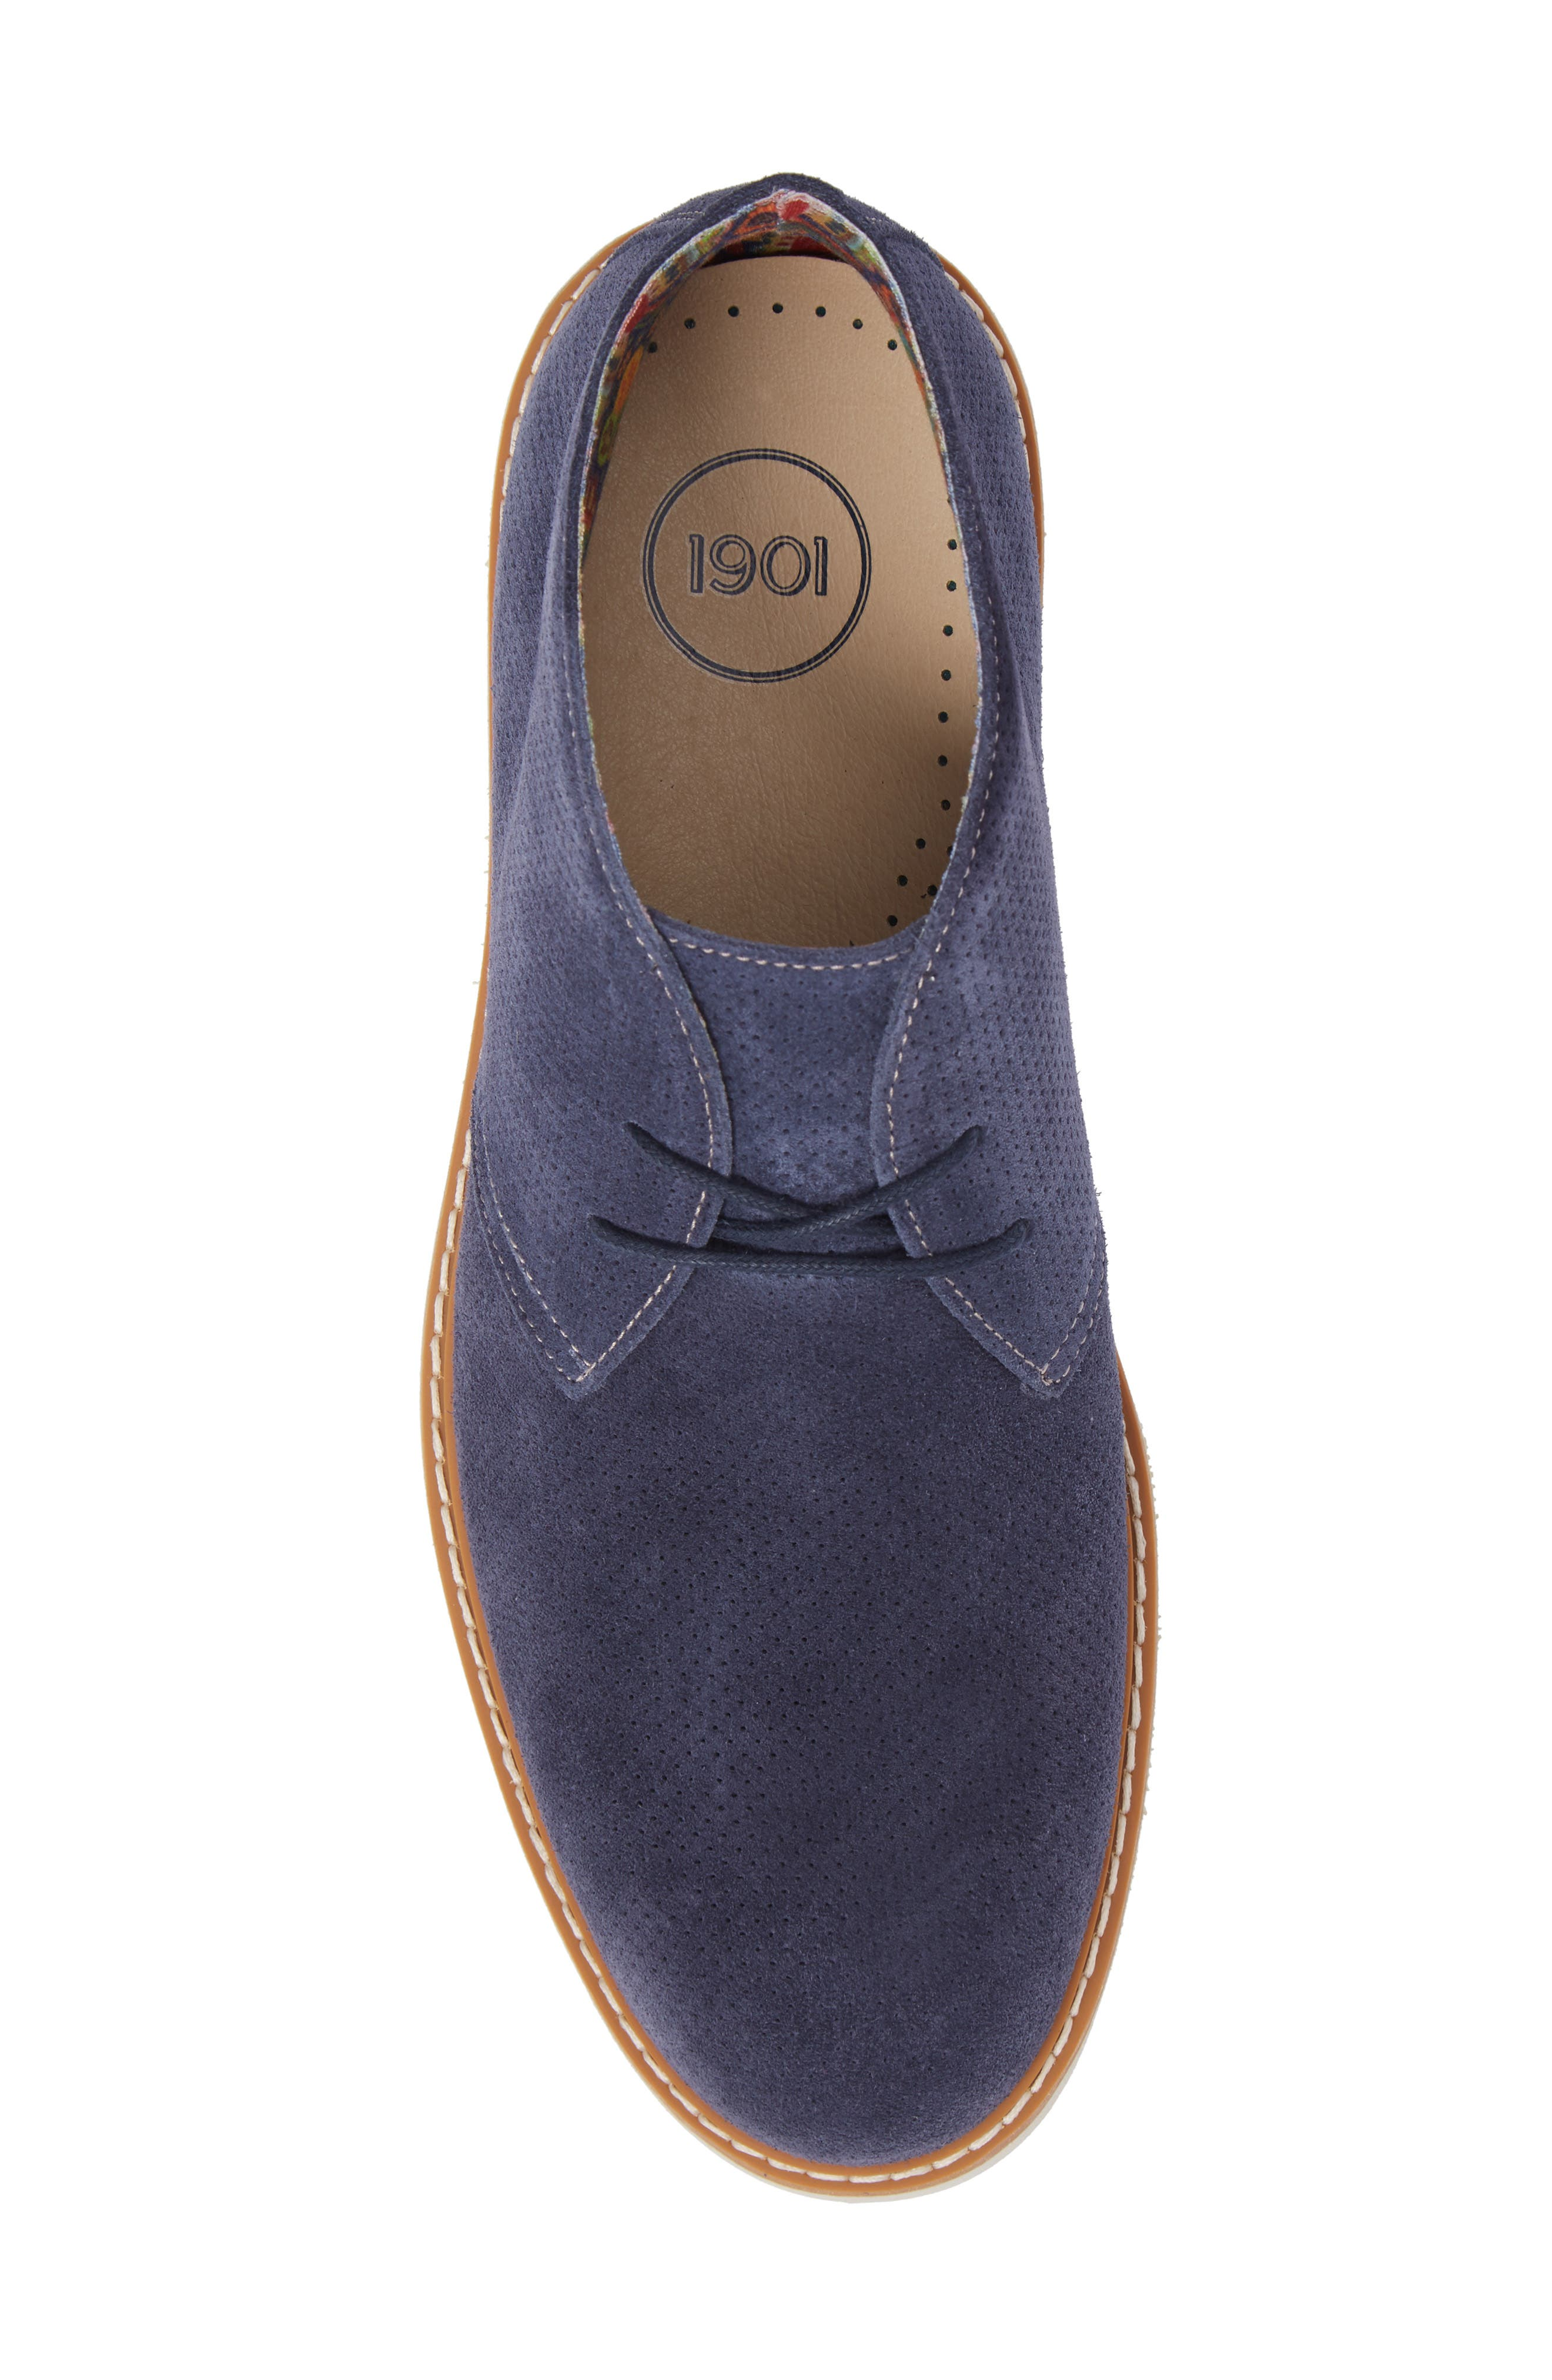 Bayside Perforated Chukka Boot,                             Alternate thumbnail 5, color,                             Blue Suede